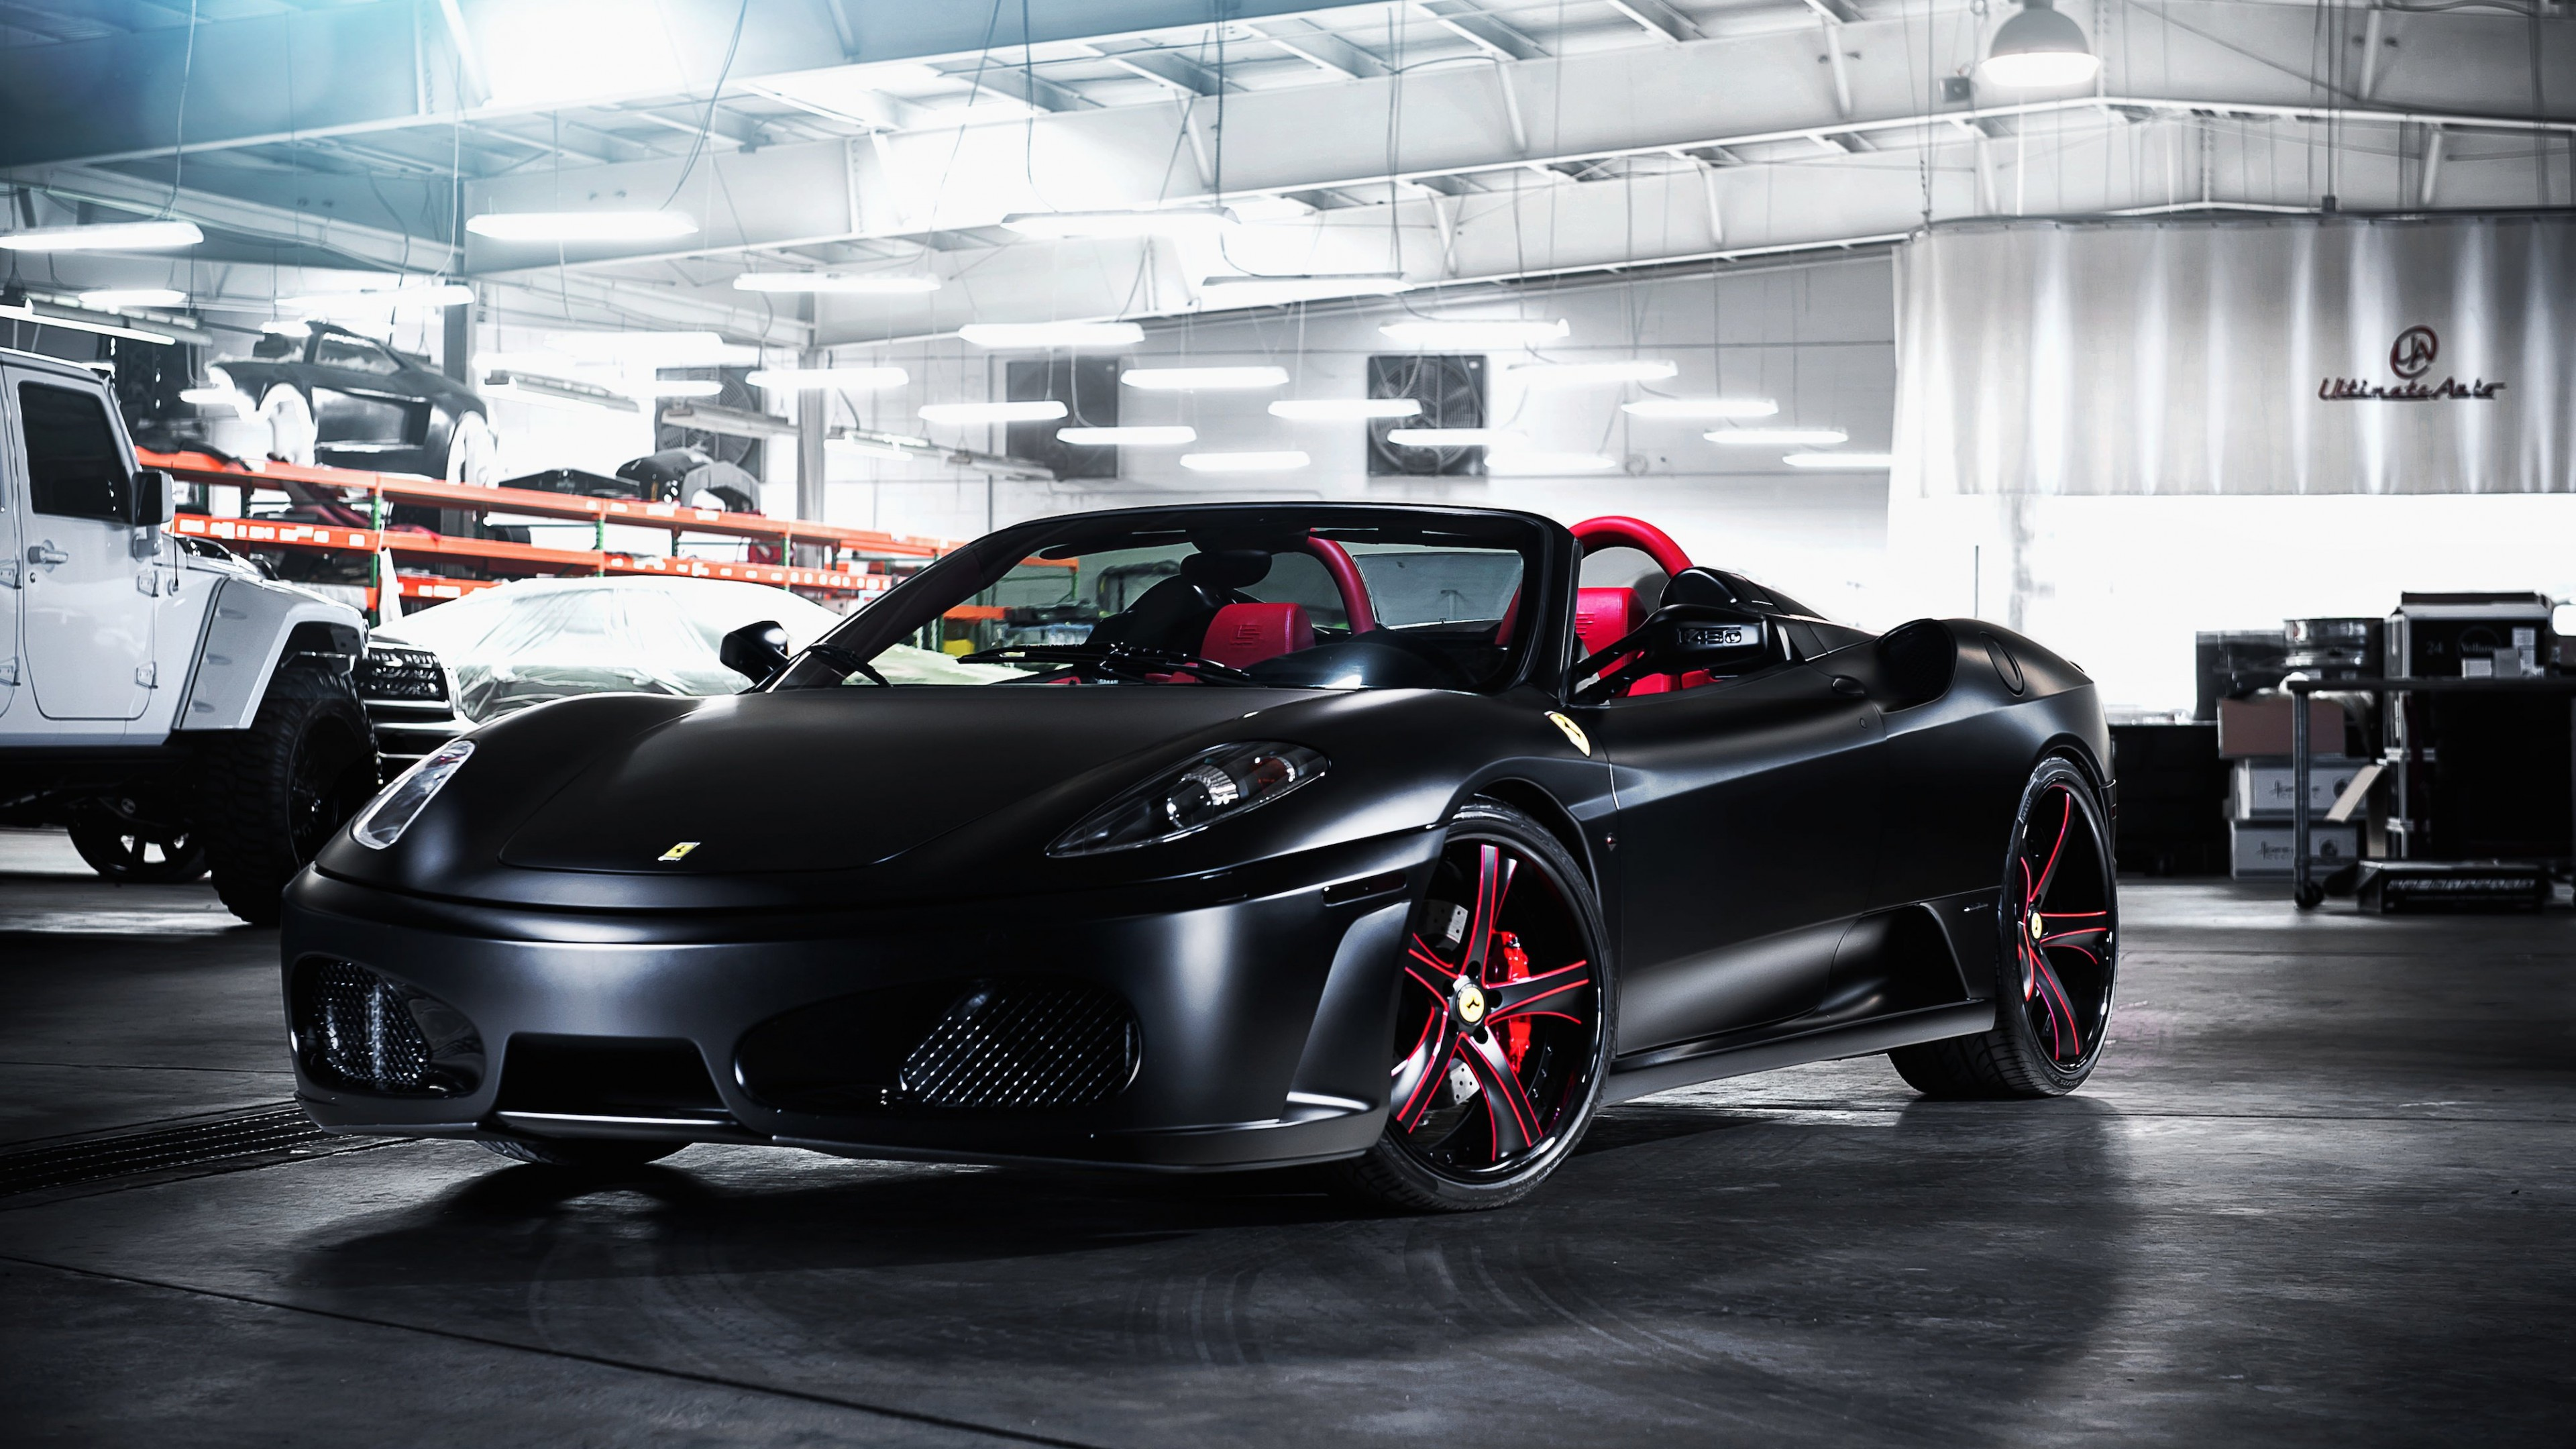 Matte Black Ferrari F430 on Savini Wheels Wallpaper for Desktop 4K 3840x2160